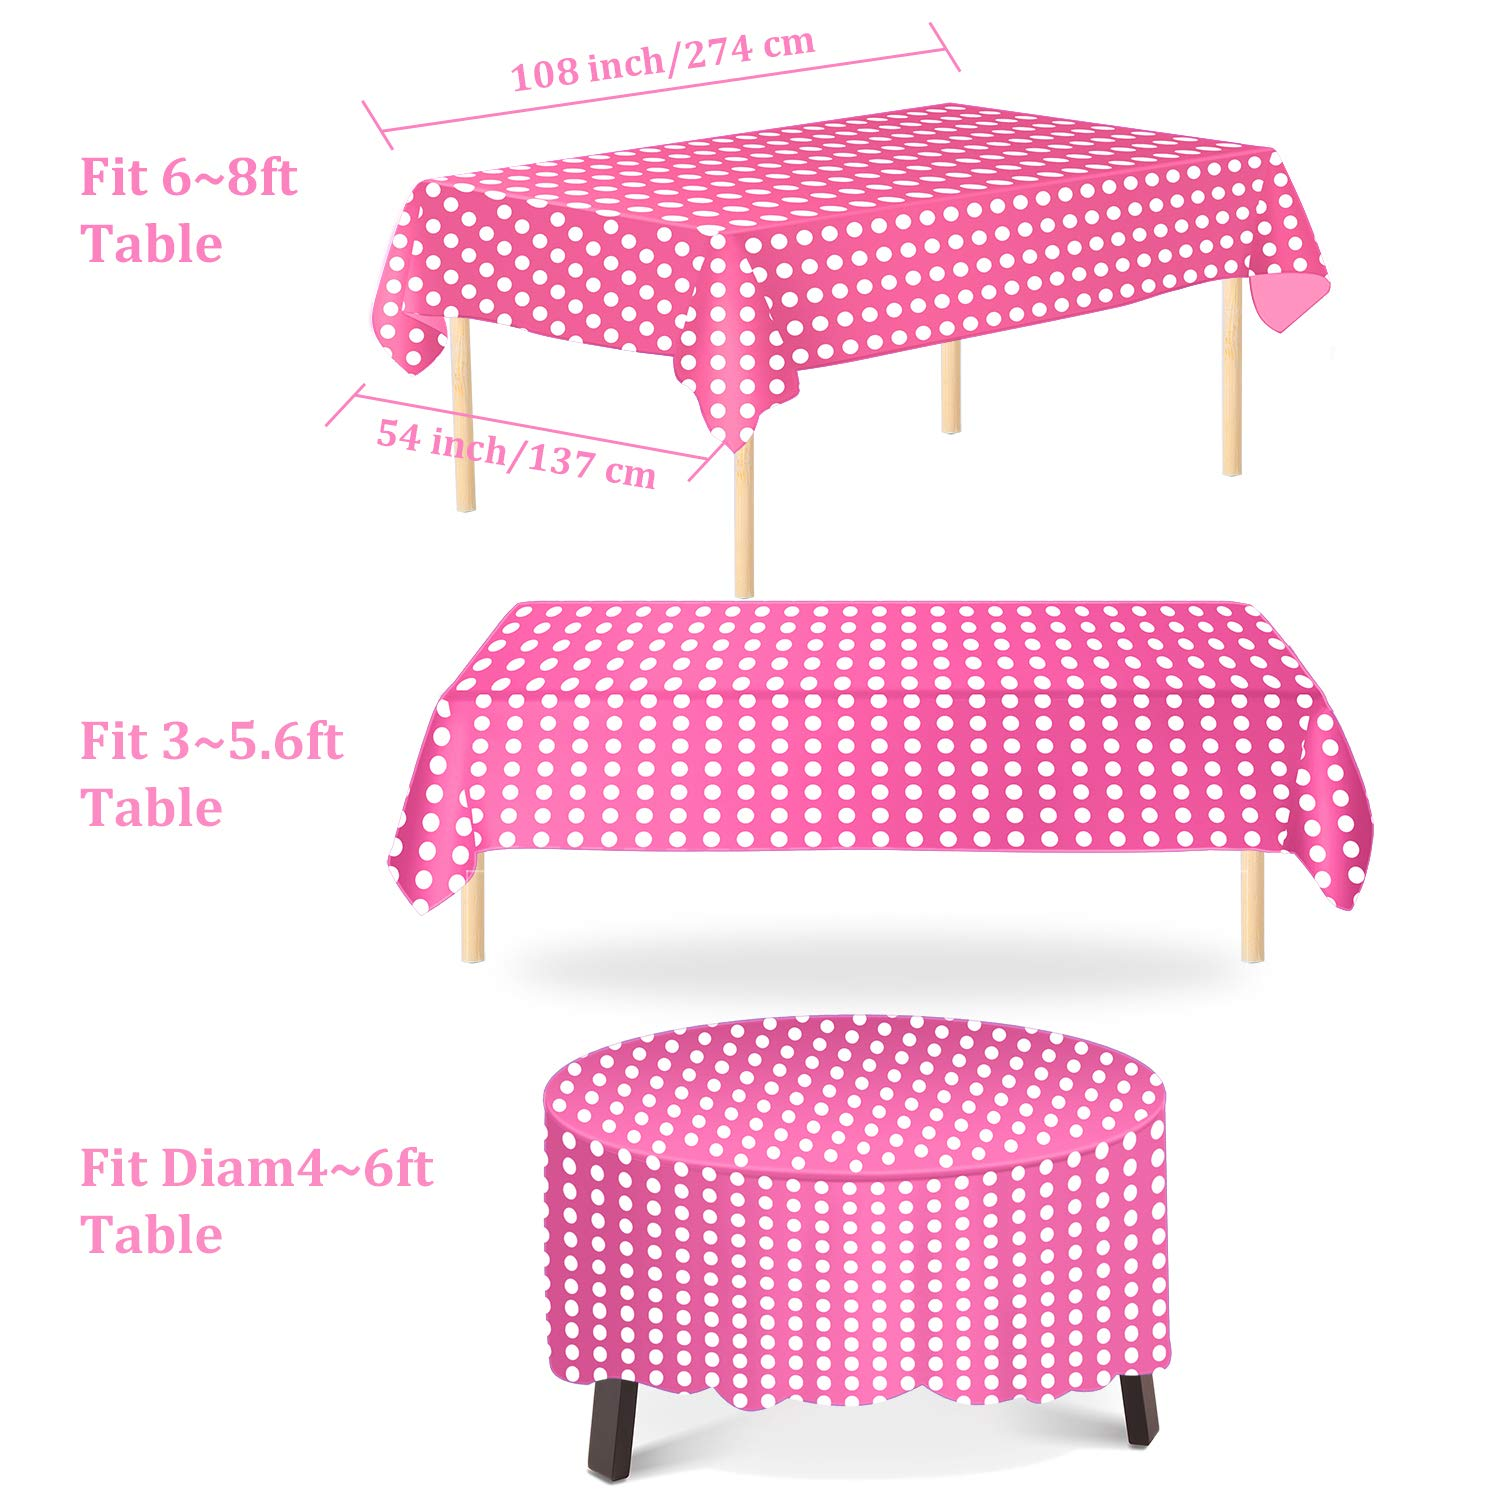 Aneco 6 Pack Disposable Tablecloths 54 x 108 Inch Plastic Rectangle Table Cloths Table Covers for Indoor or Outdoor Parties Birthdays Weddings Christmas